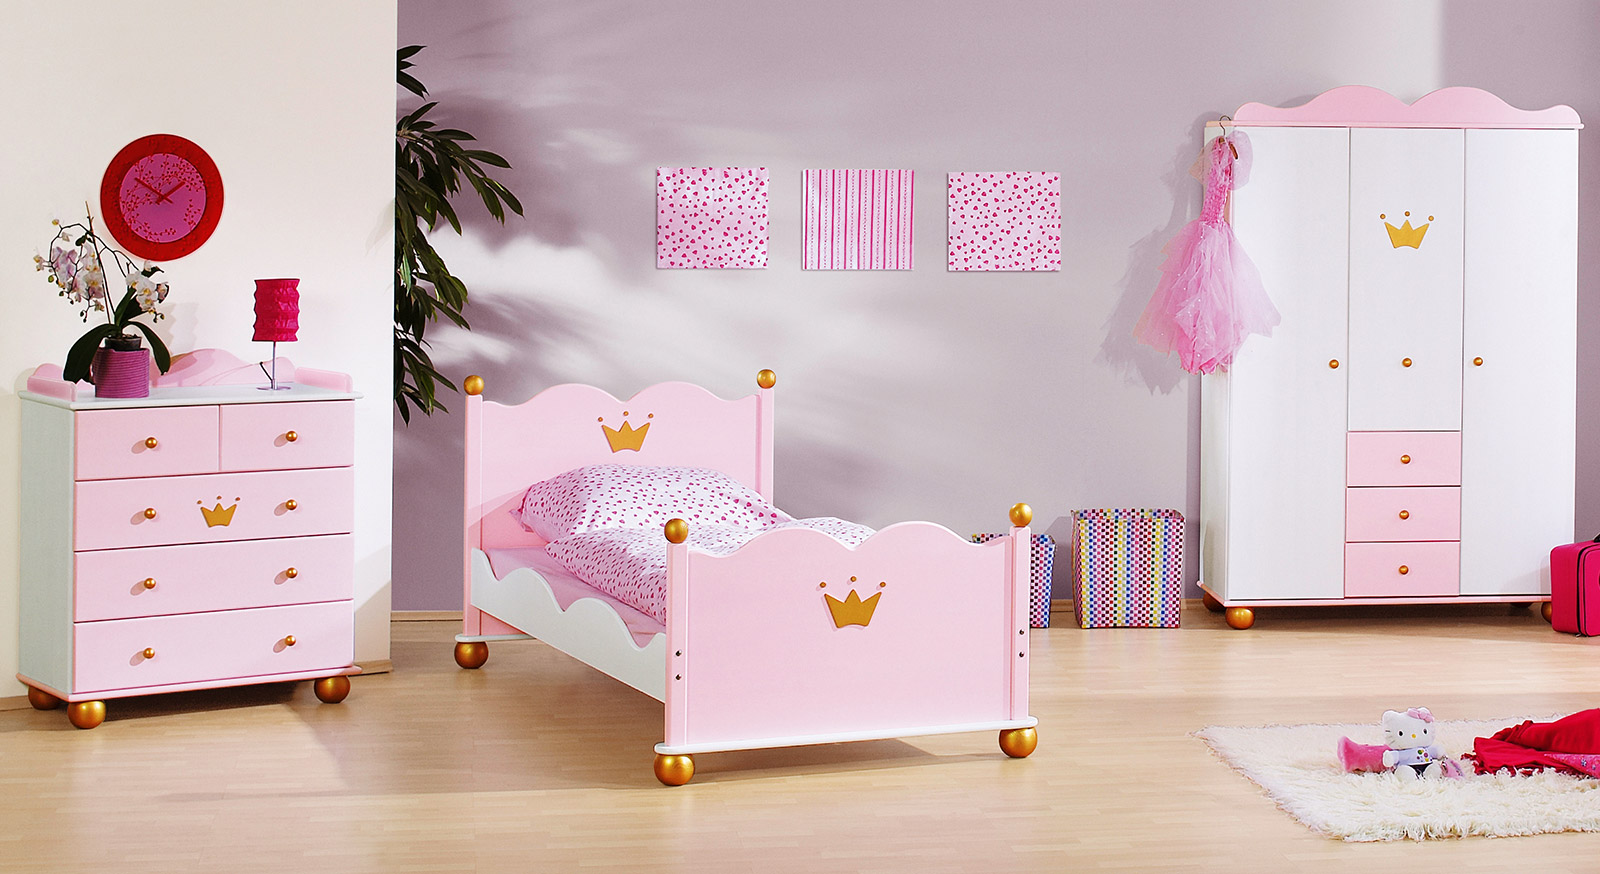 prinzessinnen kinderzimmer prinzessin karolin im online shop kaufen. Black Bedroom Furniture Sets. Home Design Ideas